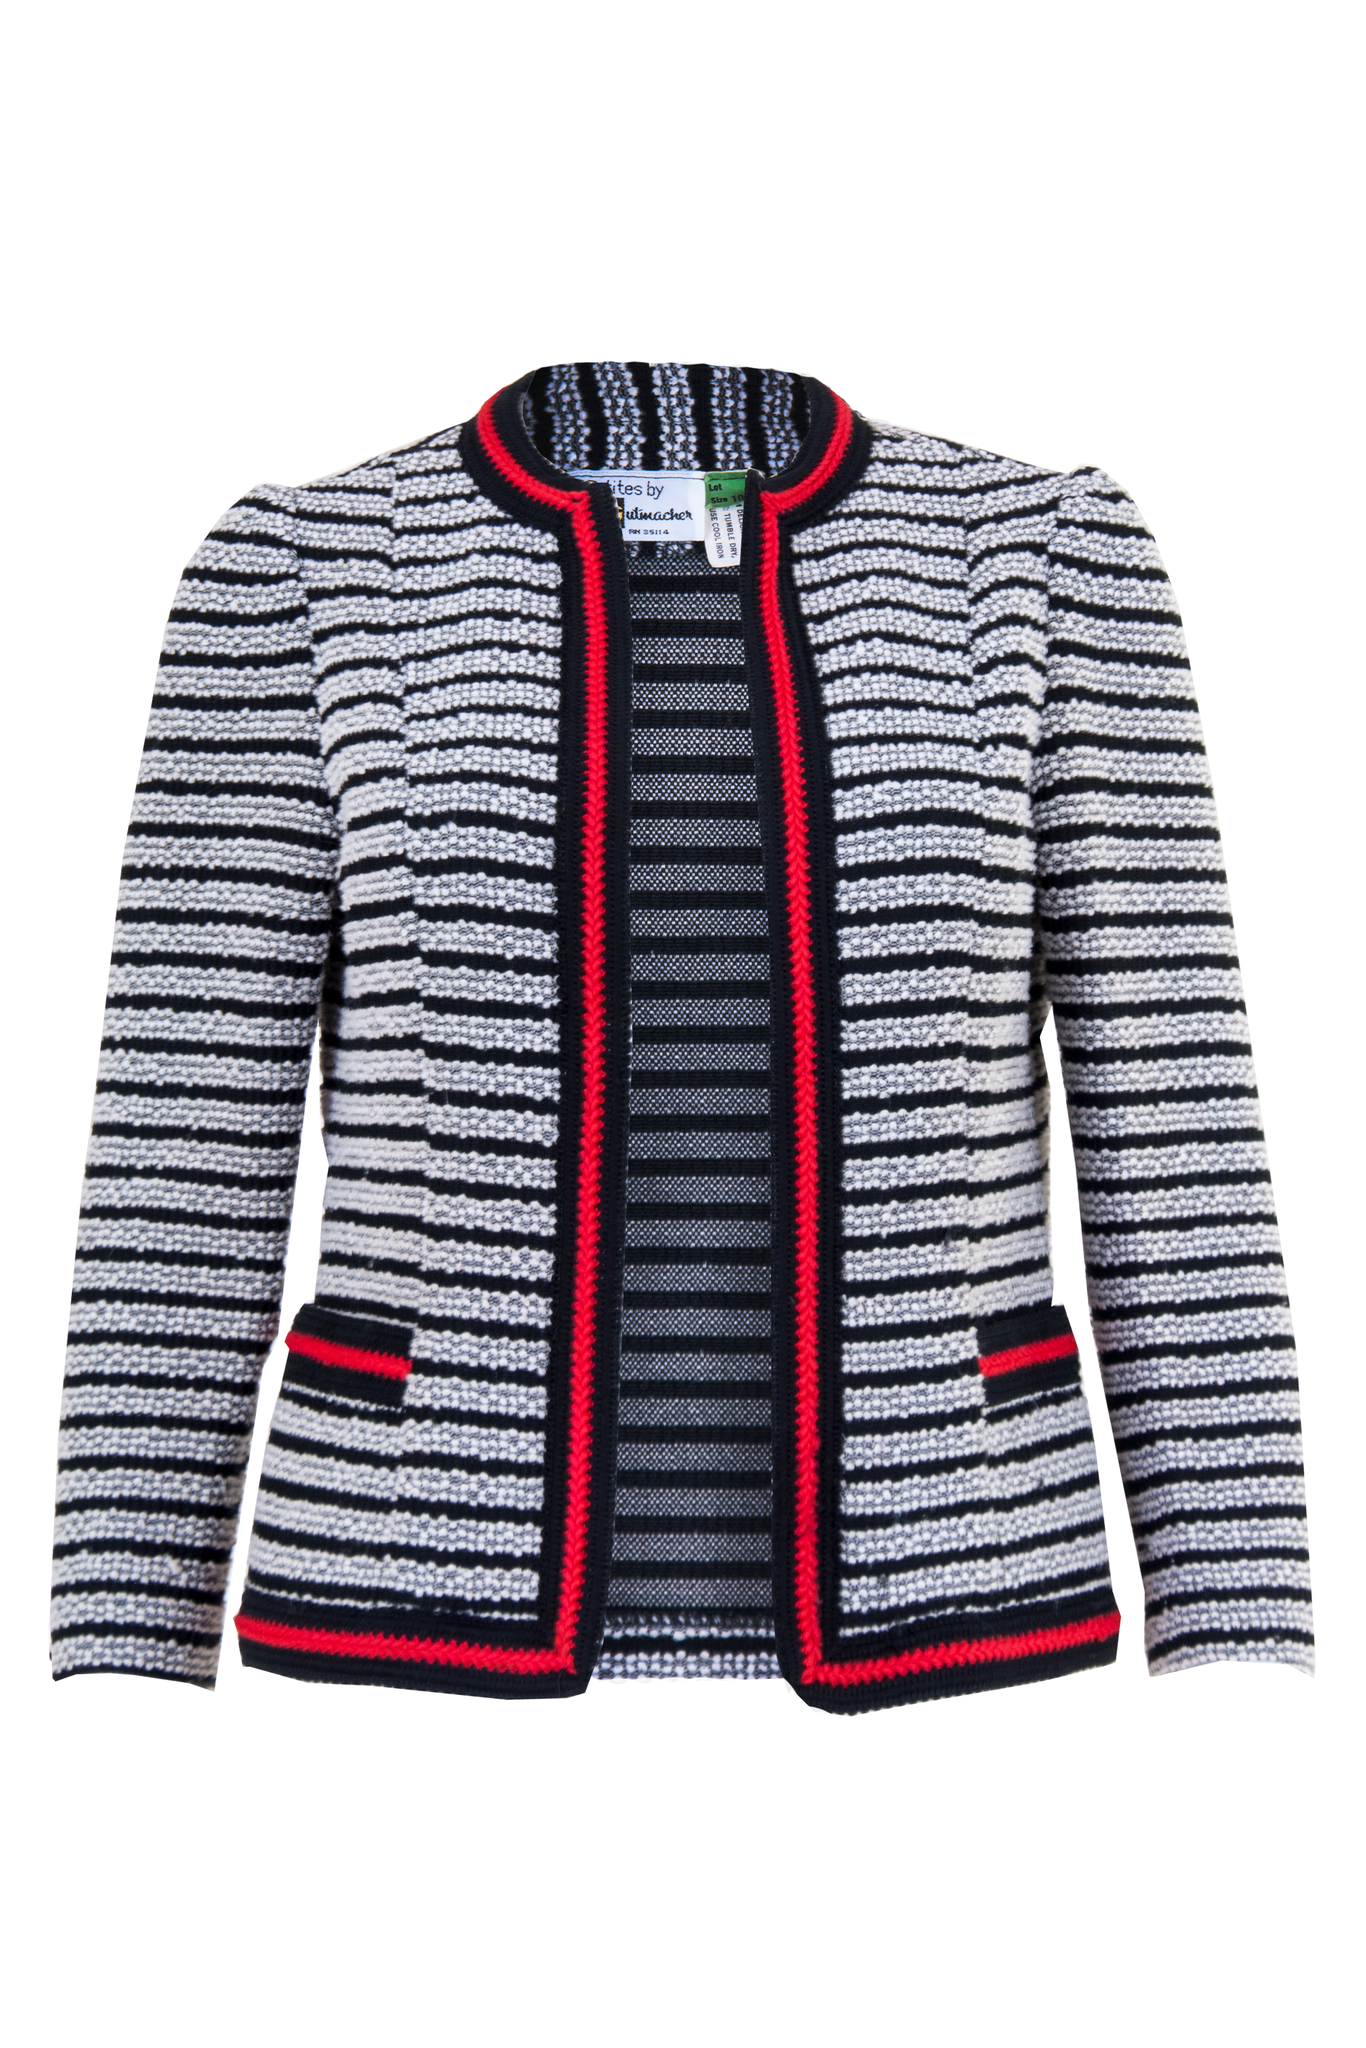 striped jacket in black and white with red trim